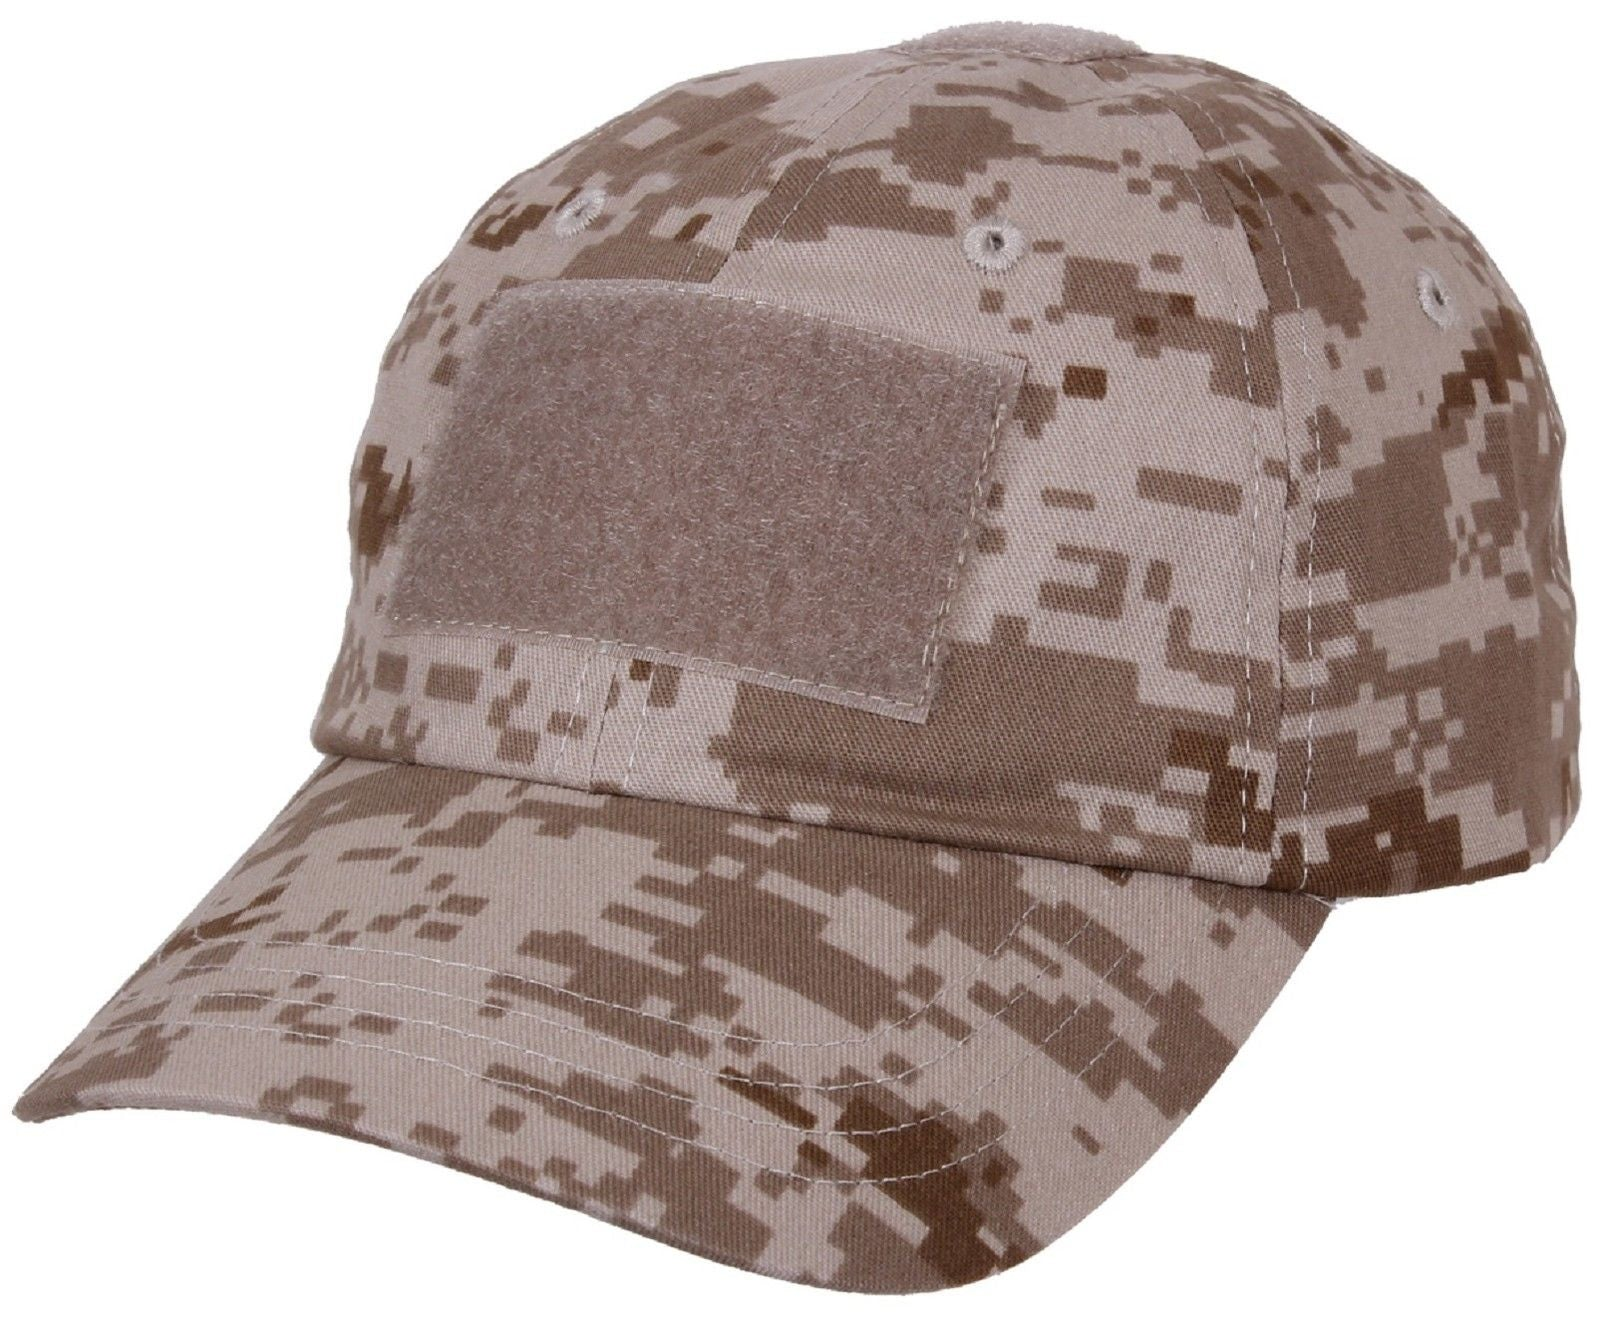 b2422c85d5c Desert Digital Tan Camouflage Tactical Operator Cap - Patch Area Baseball  Hat. Zoom. Move your mouse over image or click to enlarge